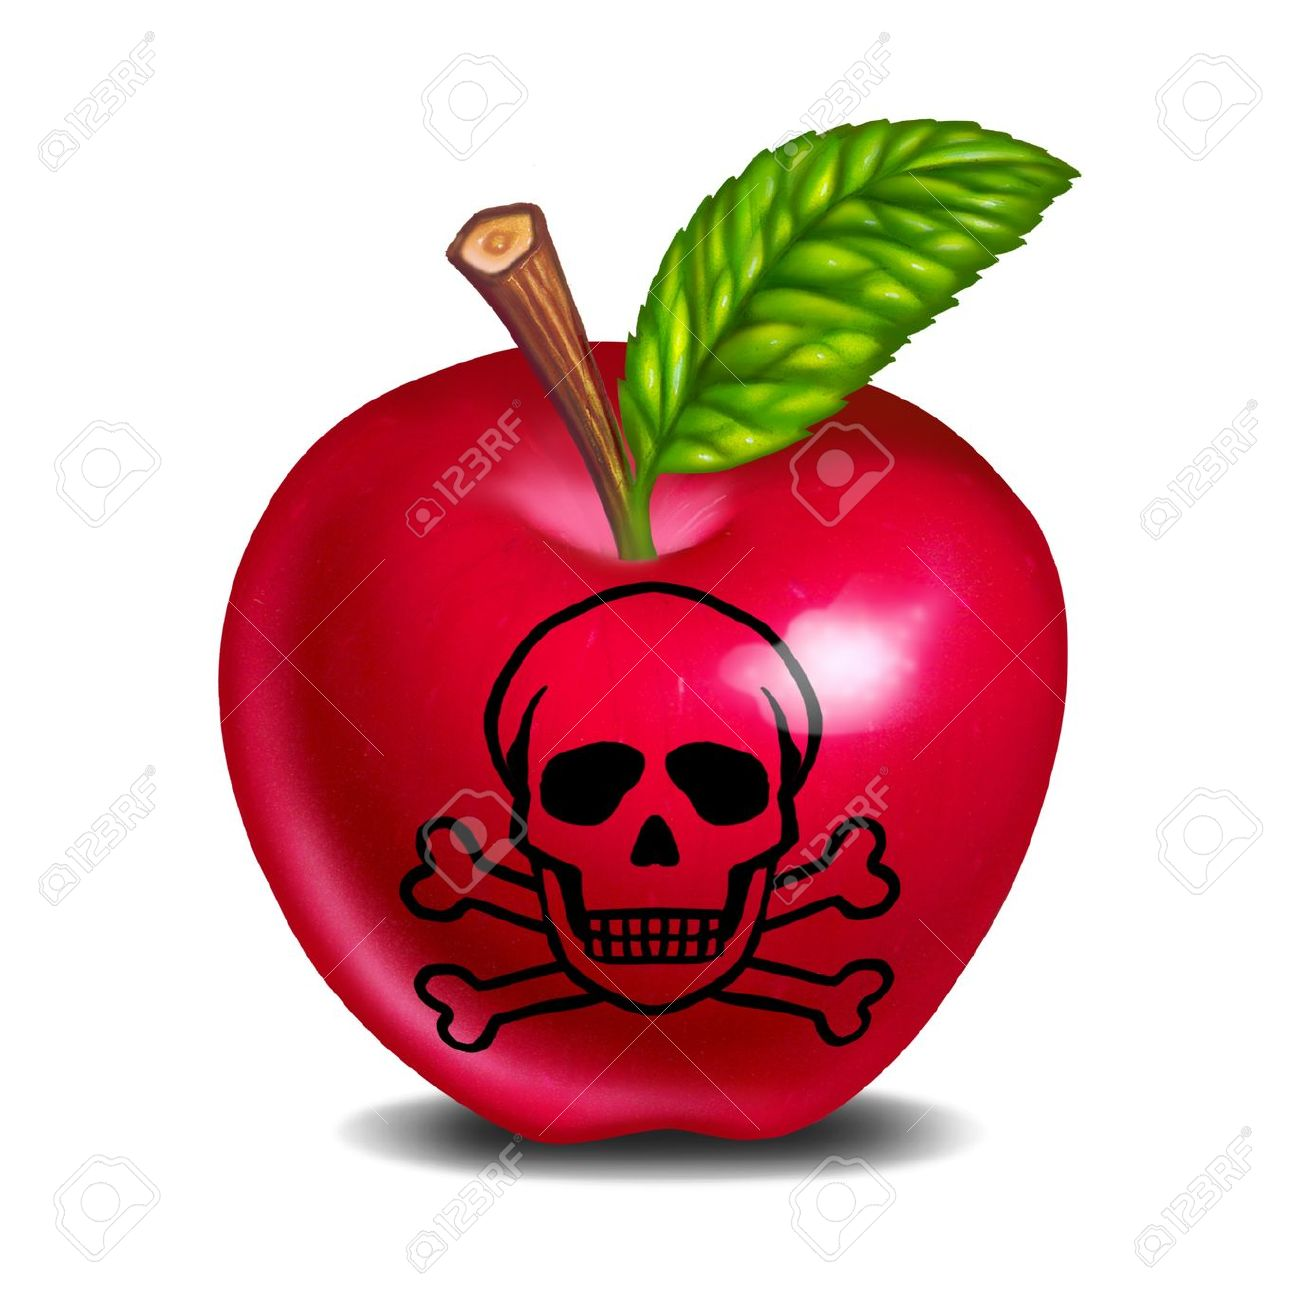 Food Poisoning Symbol Represented With An Apple And Skull And.